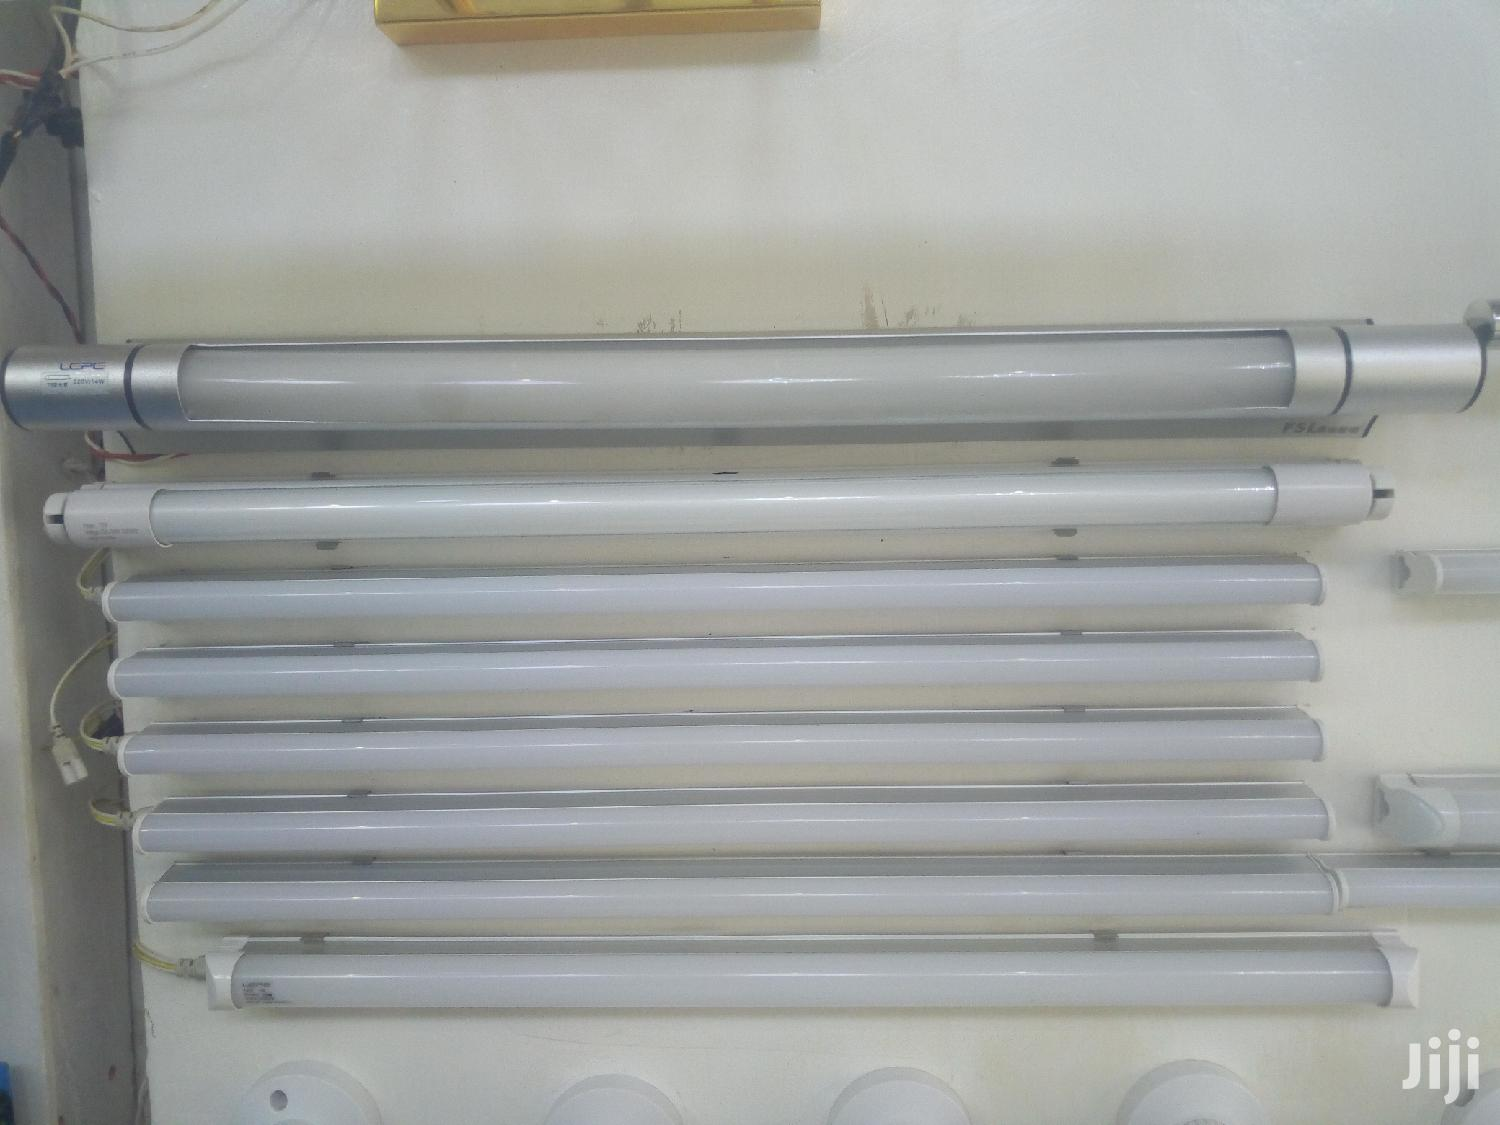 Led Bulbs And Tubes At Tje Lowest Prices | Home Accessories for sale in Kampala, Central Region, Uganda